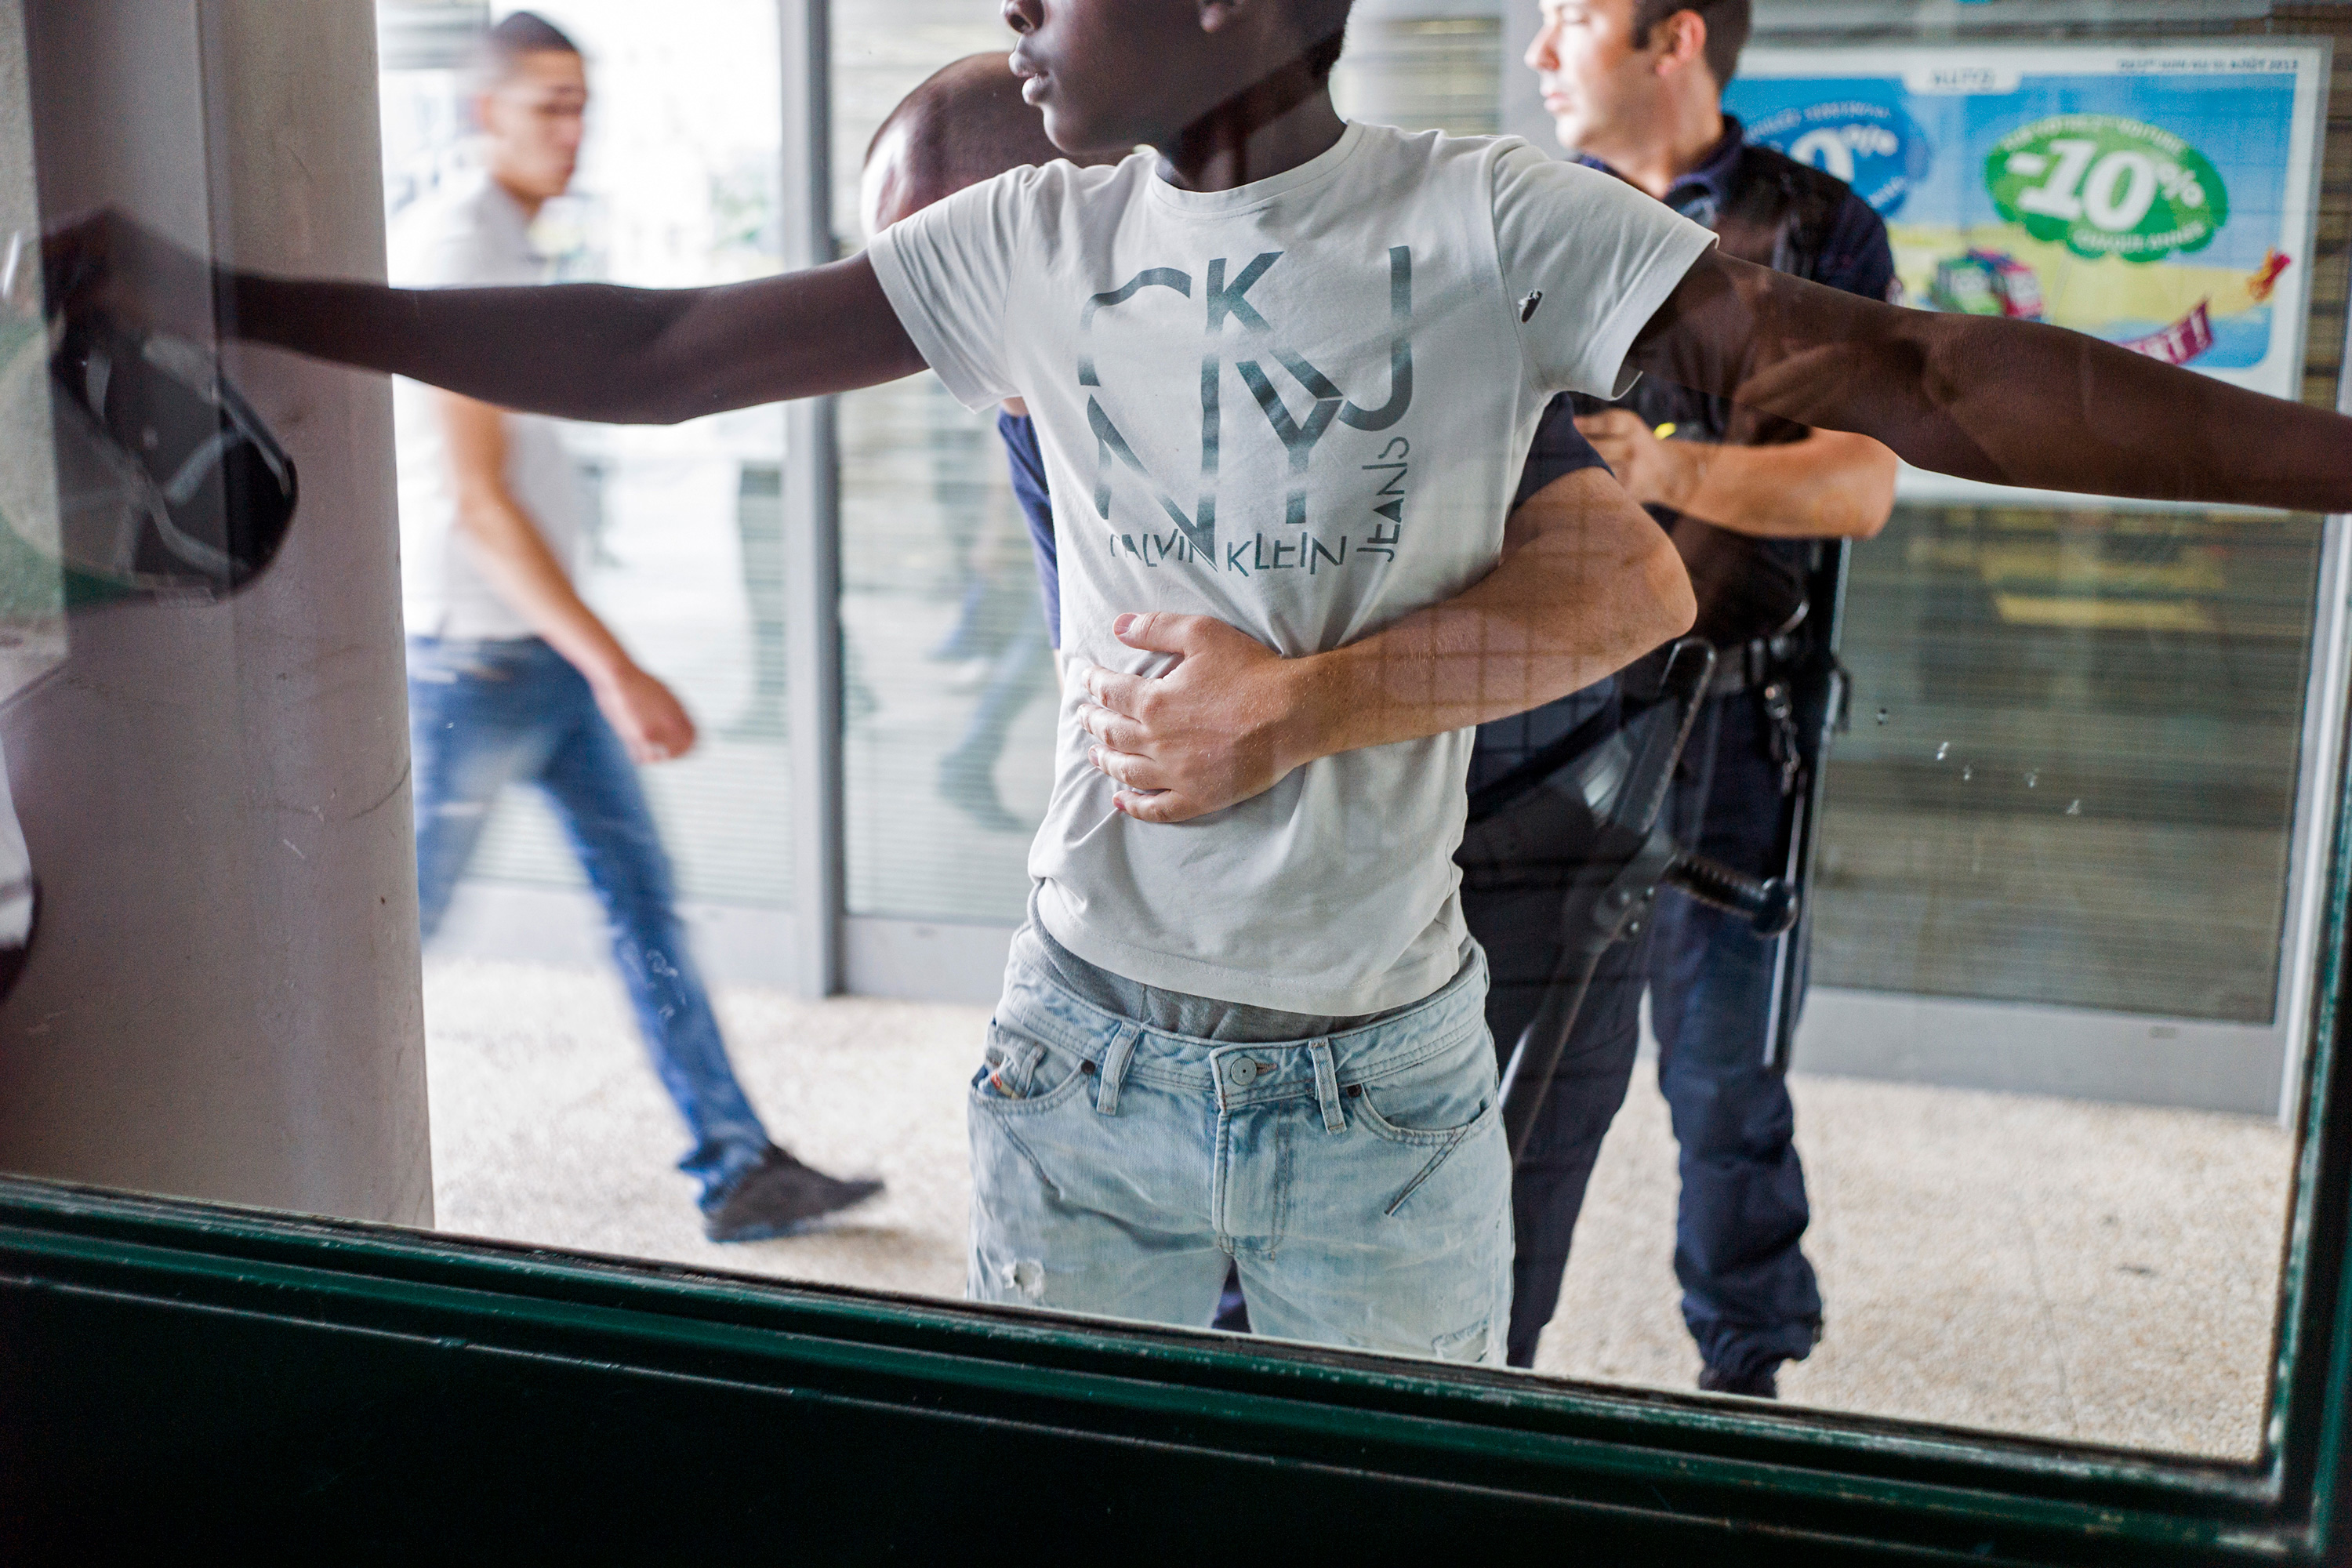 A man pressed up against a window with arms spread.